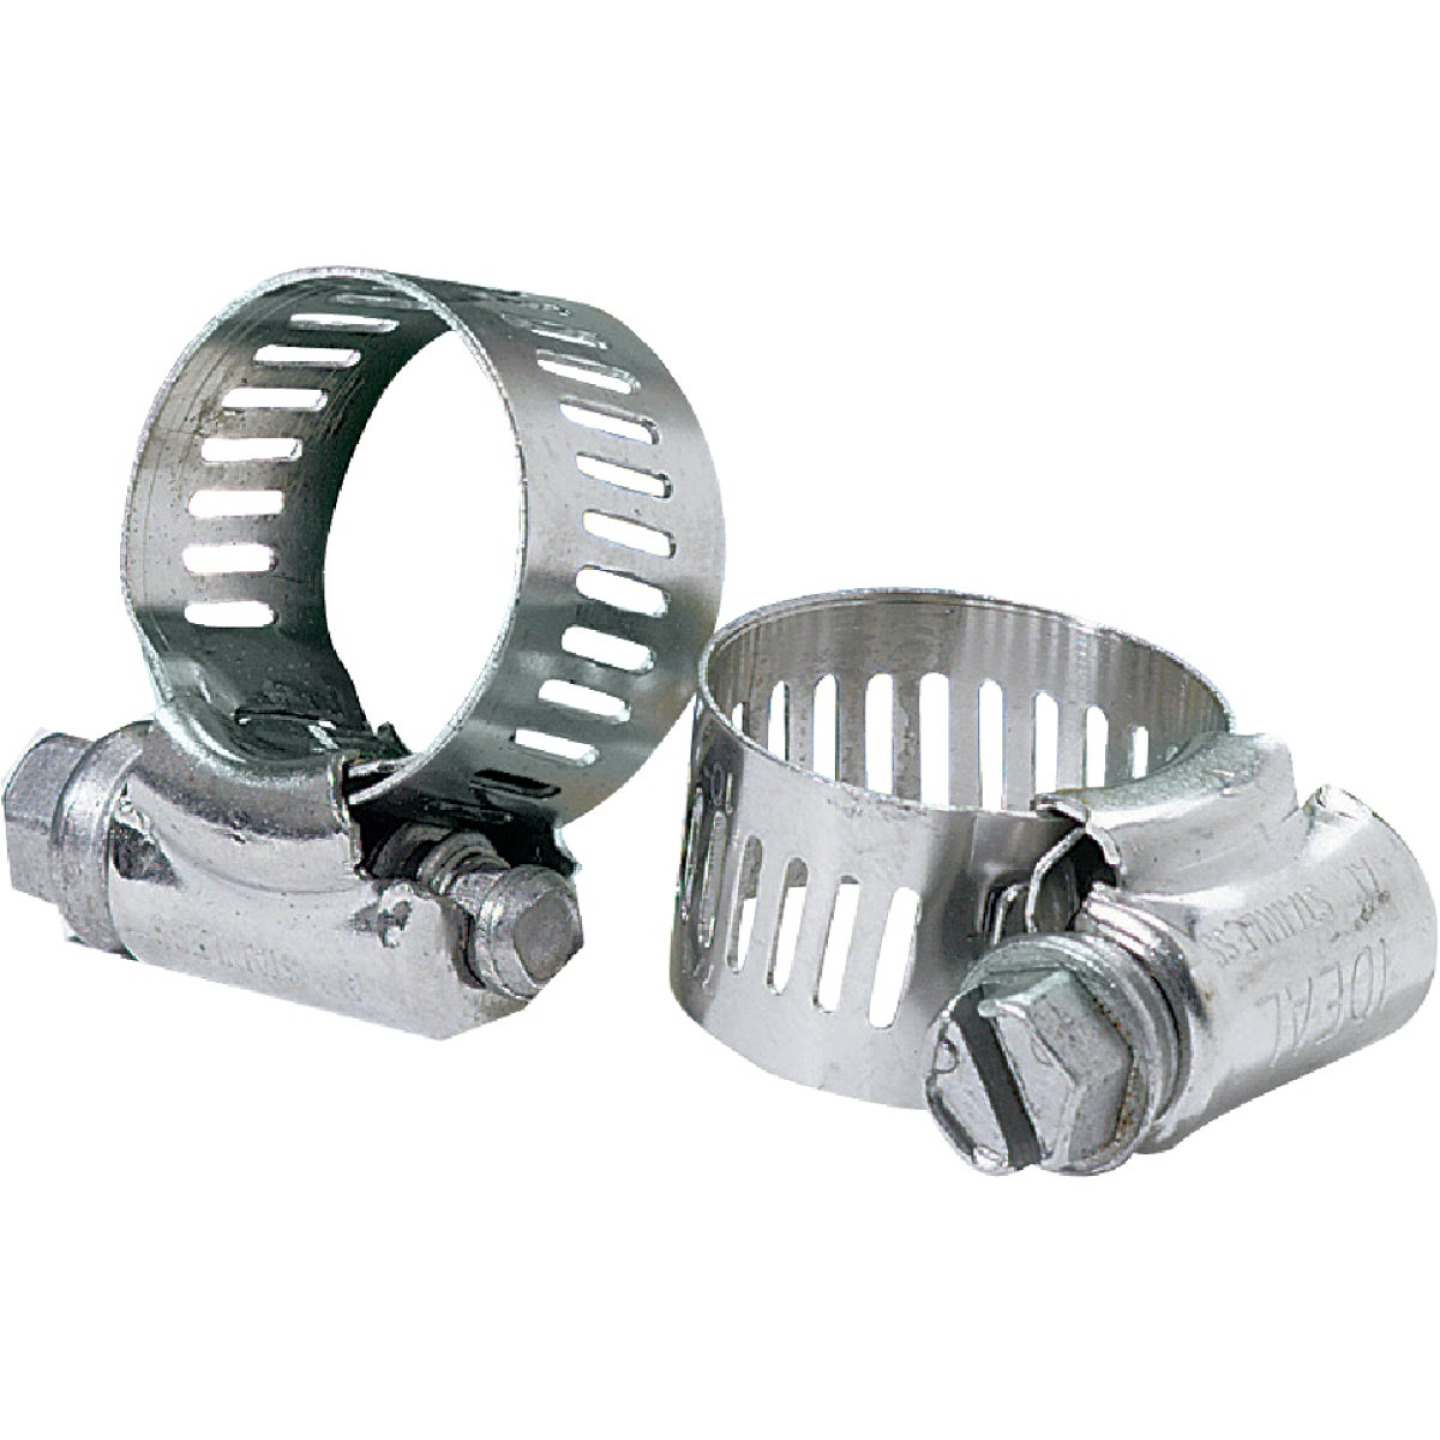 Ideal 2-1/2 In. - 4-1/2 In. 67 All Stainless Steel Hose Clamp Image 1